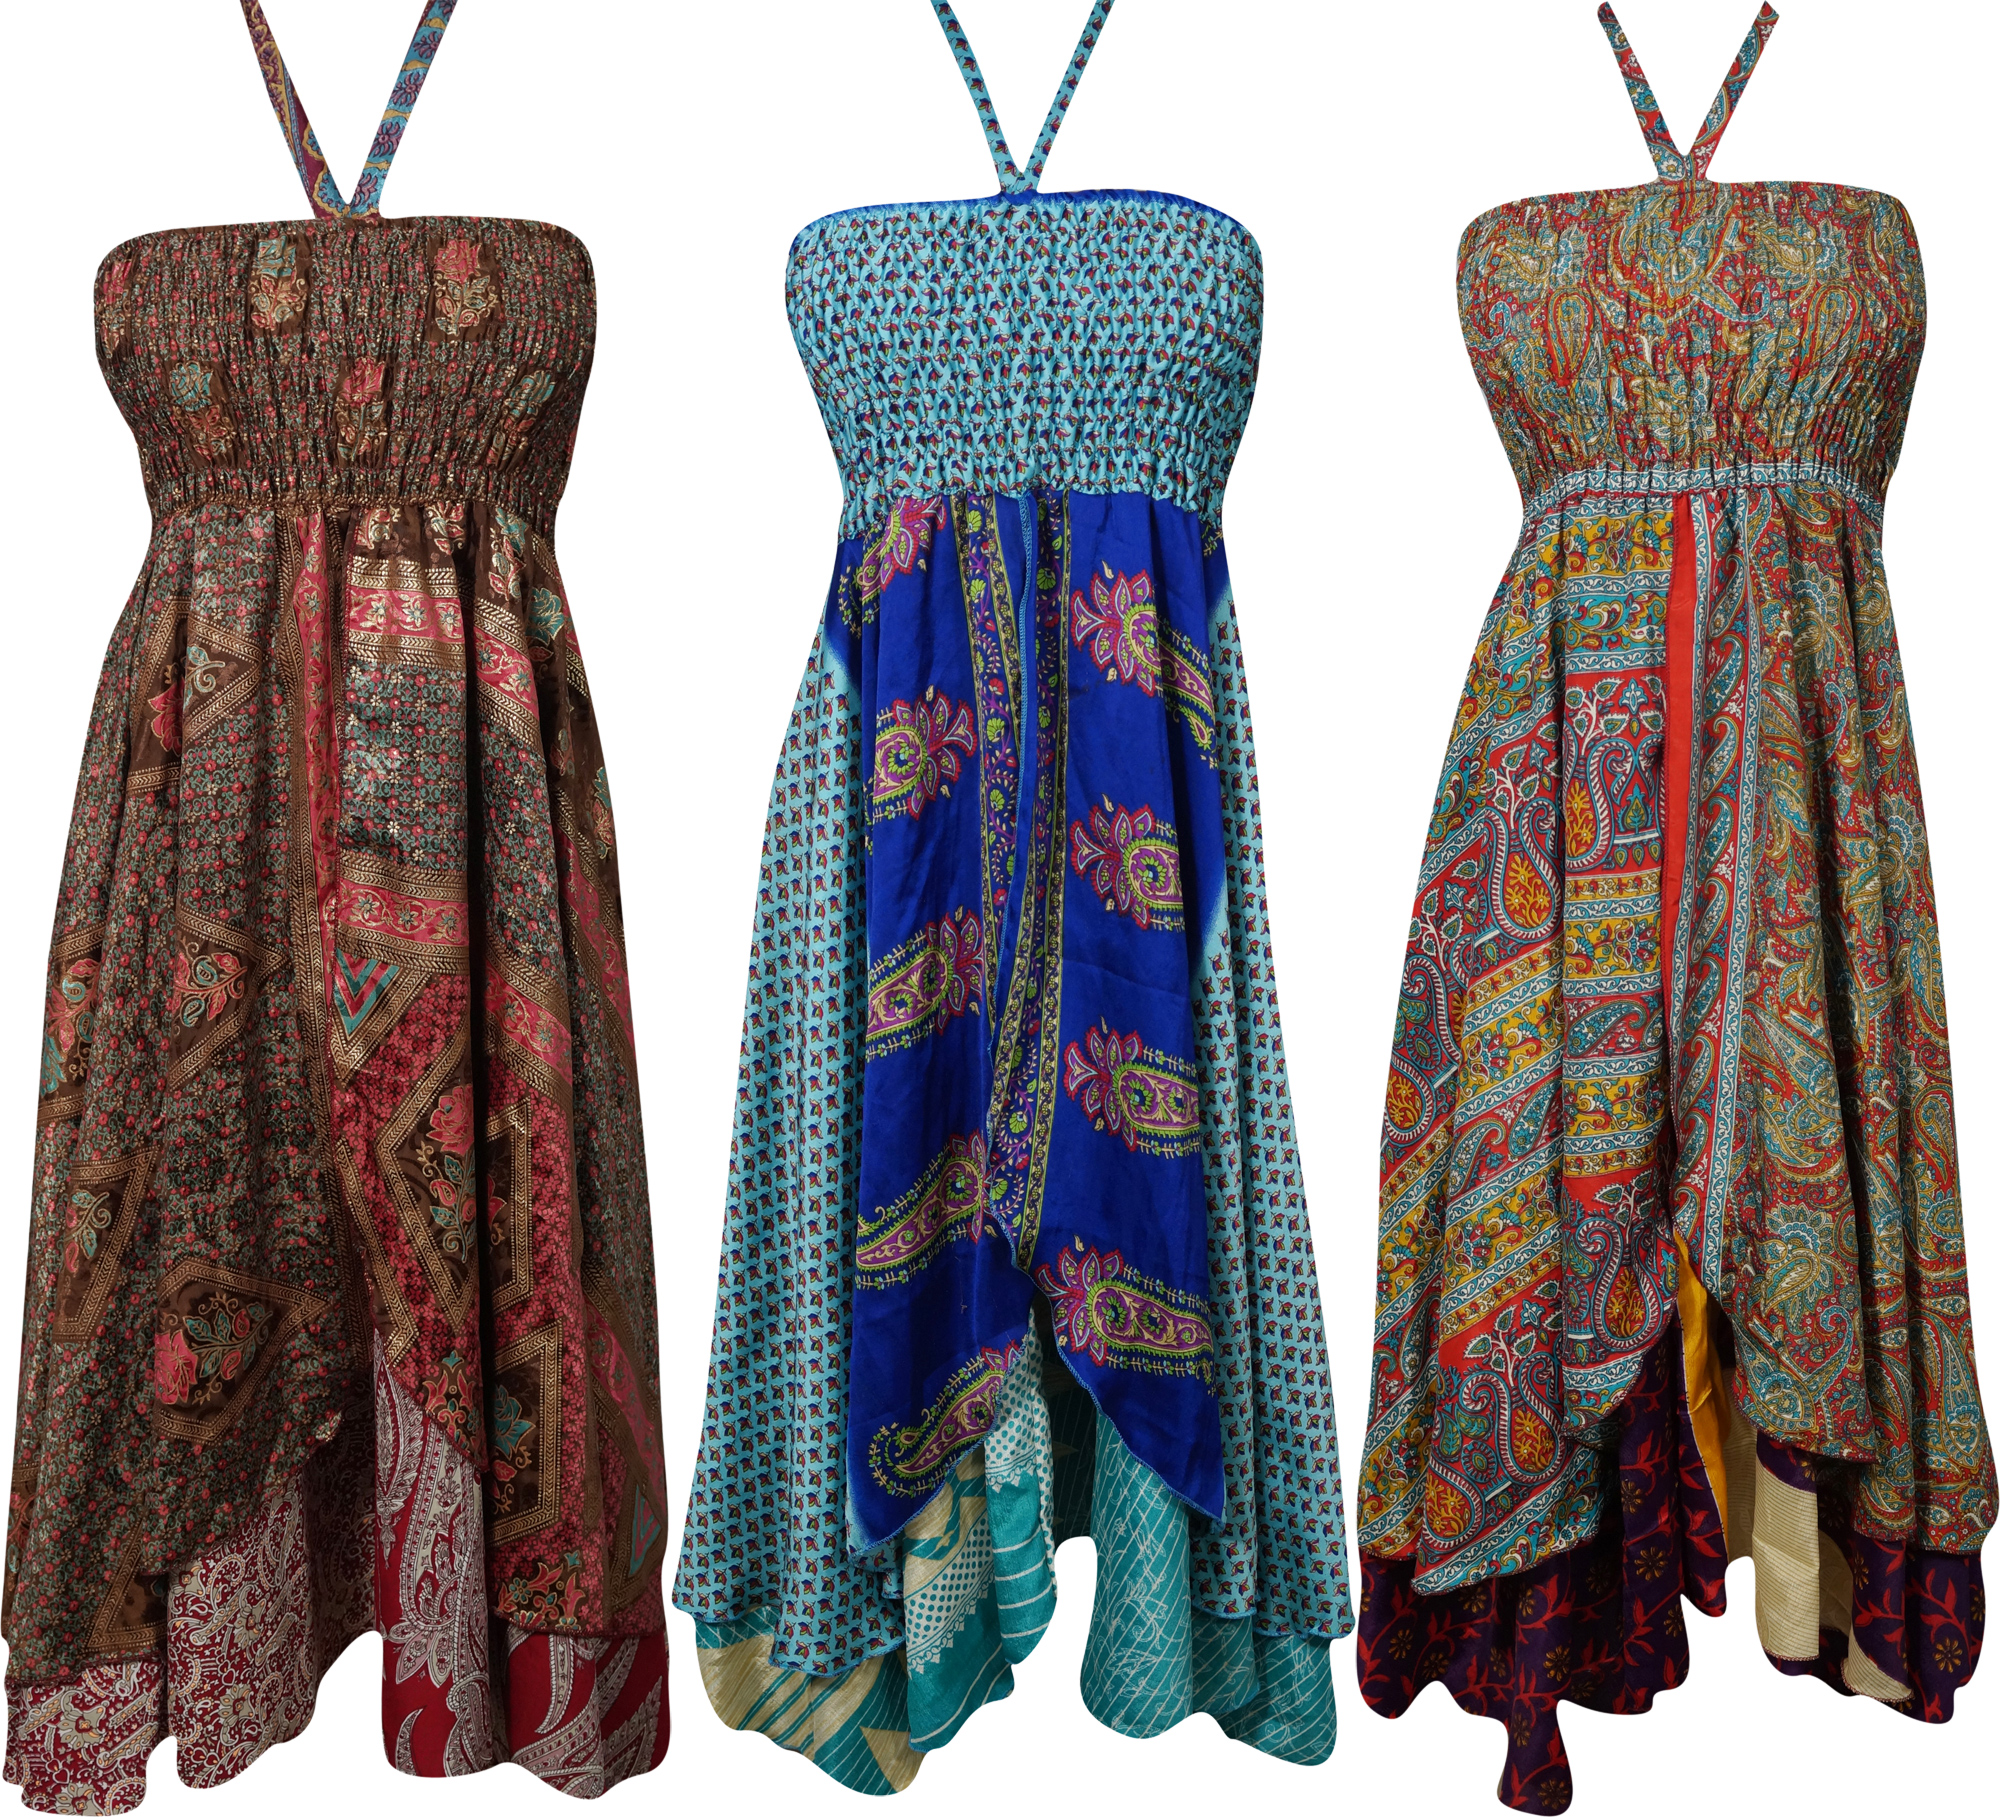 Mogul Womens Silk Sari Halter Dress Recycled Vintage Two Layer Printed Evening Sundress Wholesale Lot Of 3 Pcs